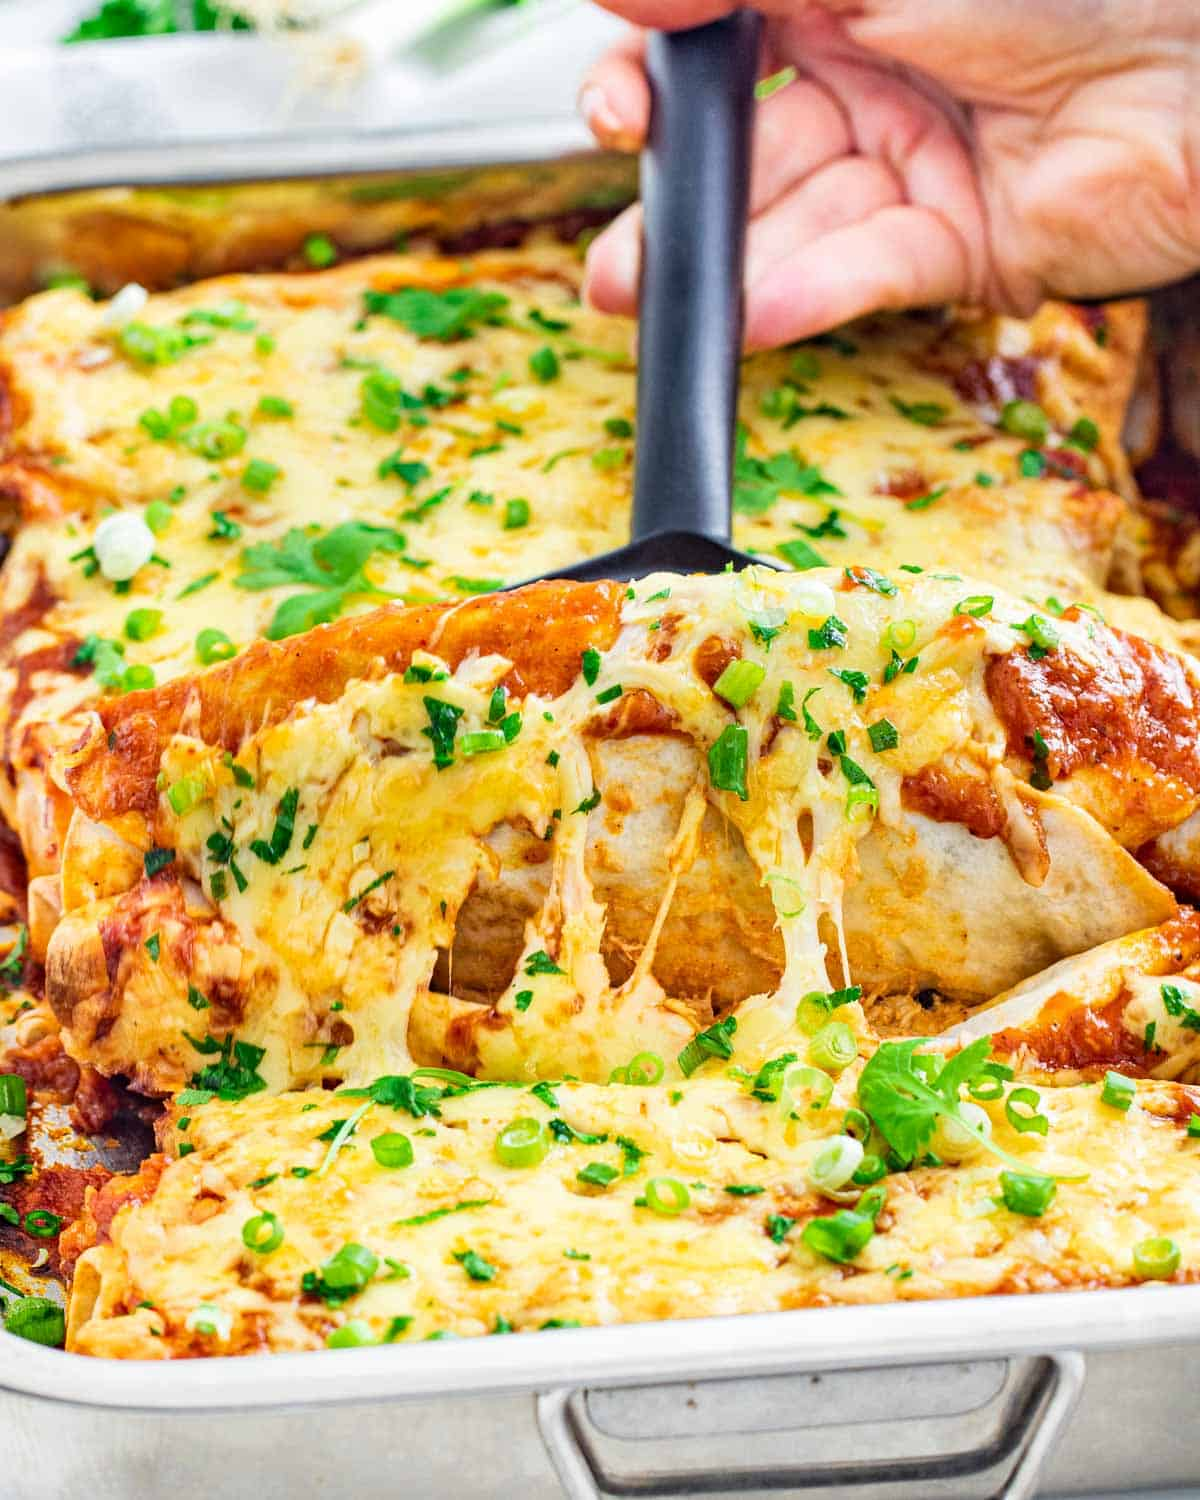 side view shot of a hand lifting up 2 chicken enchiladas from a casserole dish with a spatula